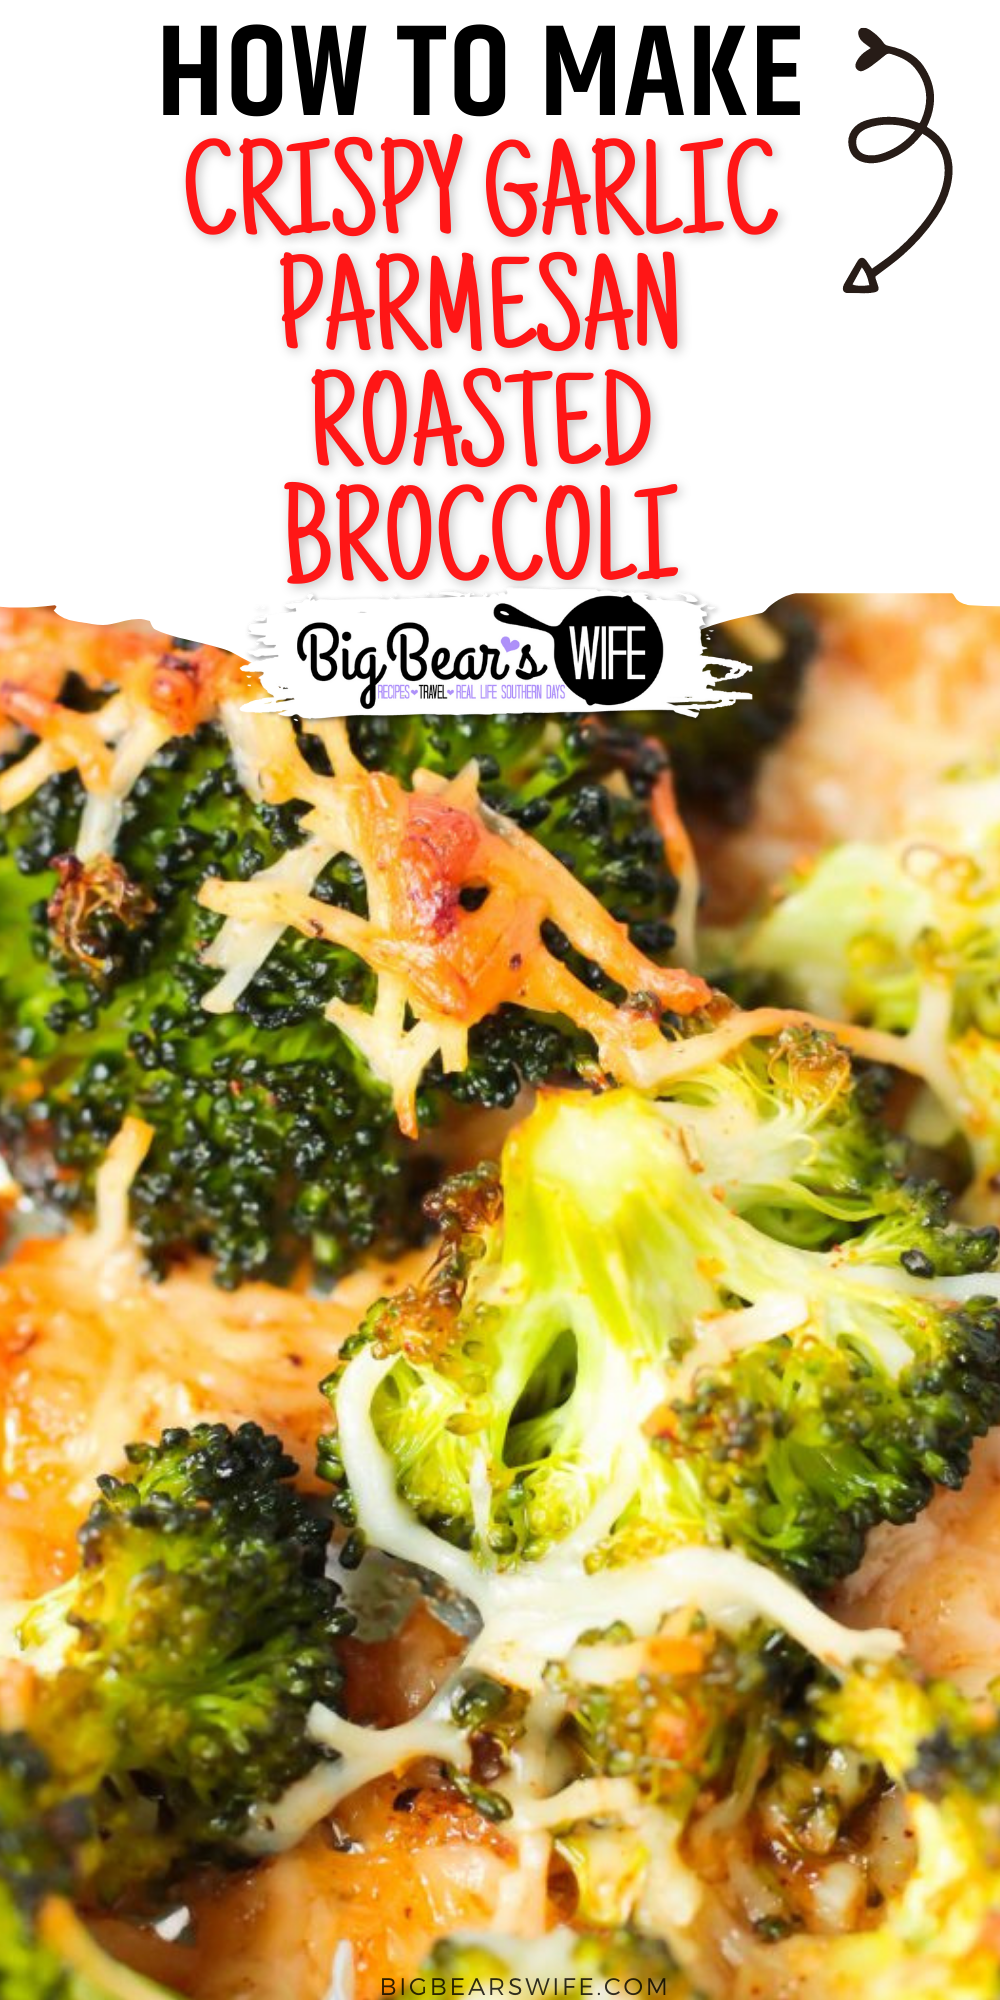 This Crispy Garlic Parmesan Roasted Broccoli is a perfectly tasty side dish that's ready in less than 30 minutes! Just mix and roast for a super delicious side to serve with all sorts of entrees!